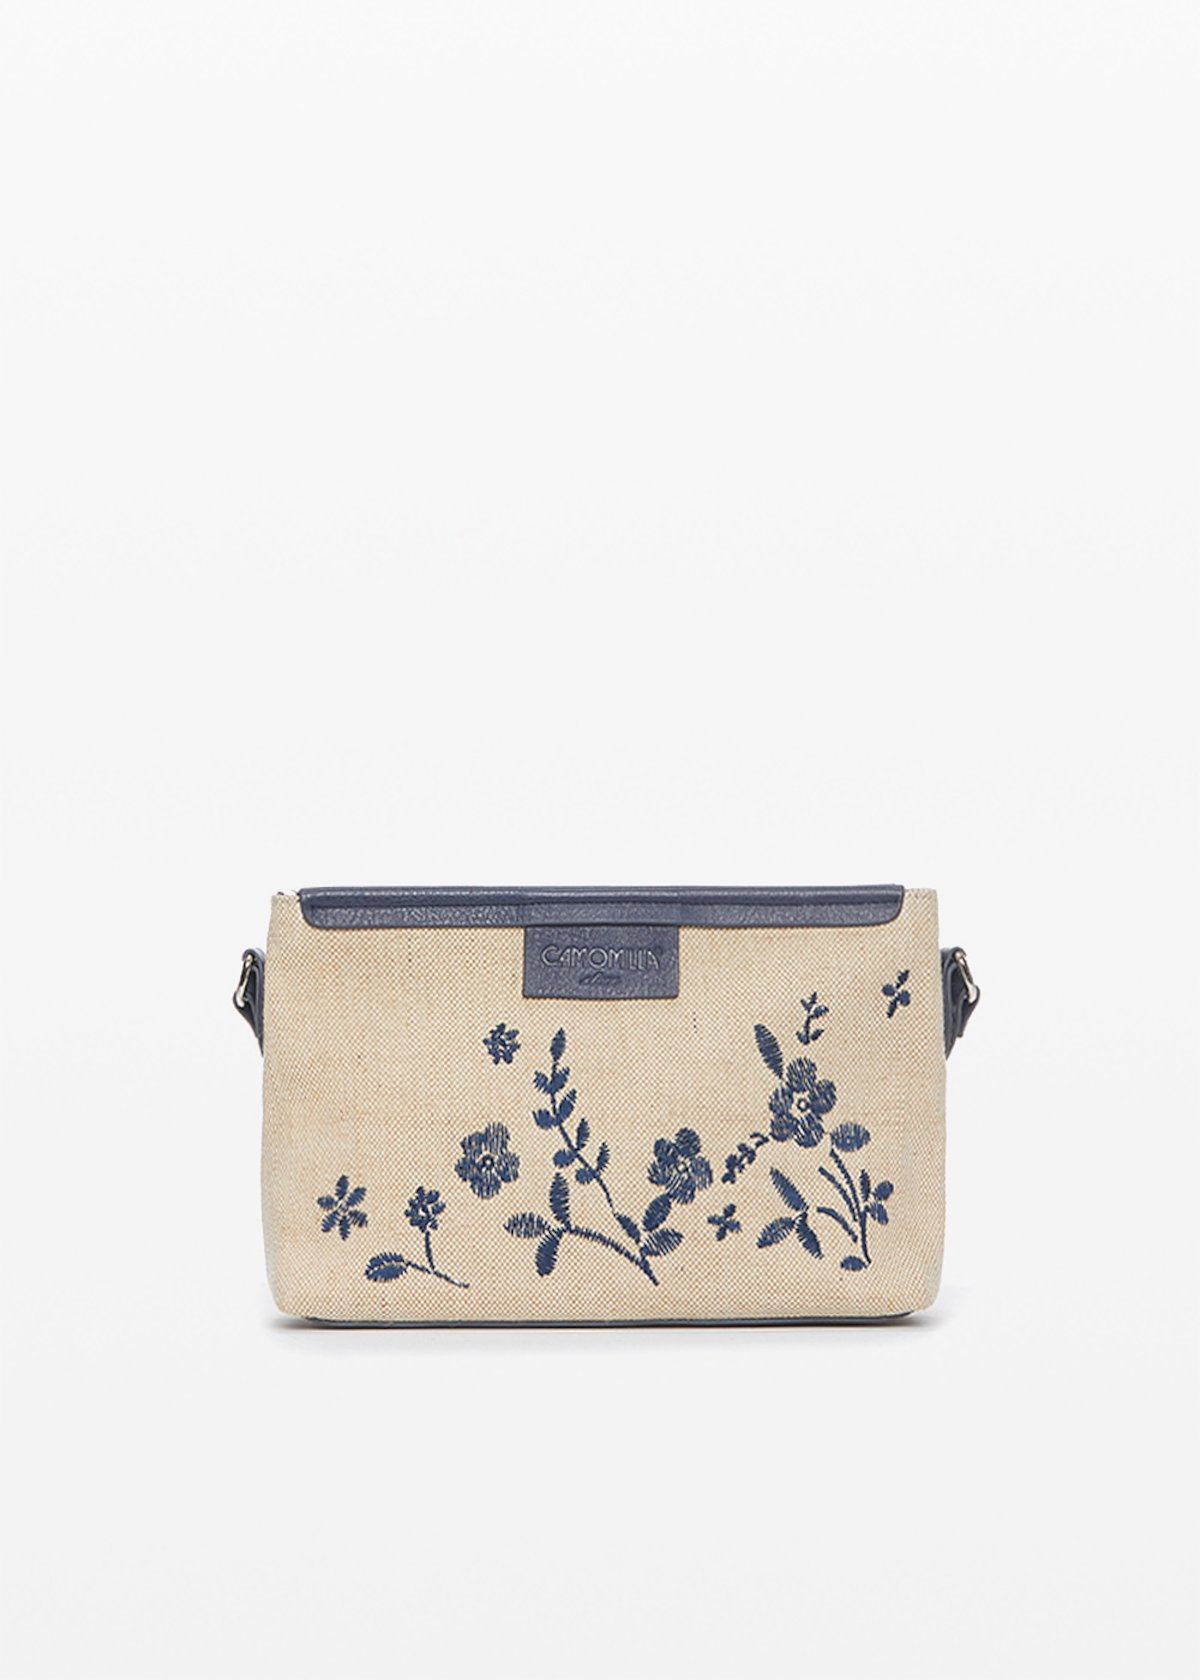 Bunny clutch bag in canvas with flowers decoration - Light Beige /  Medium Blue - Woman